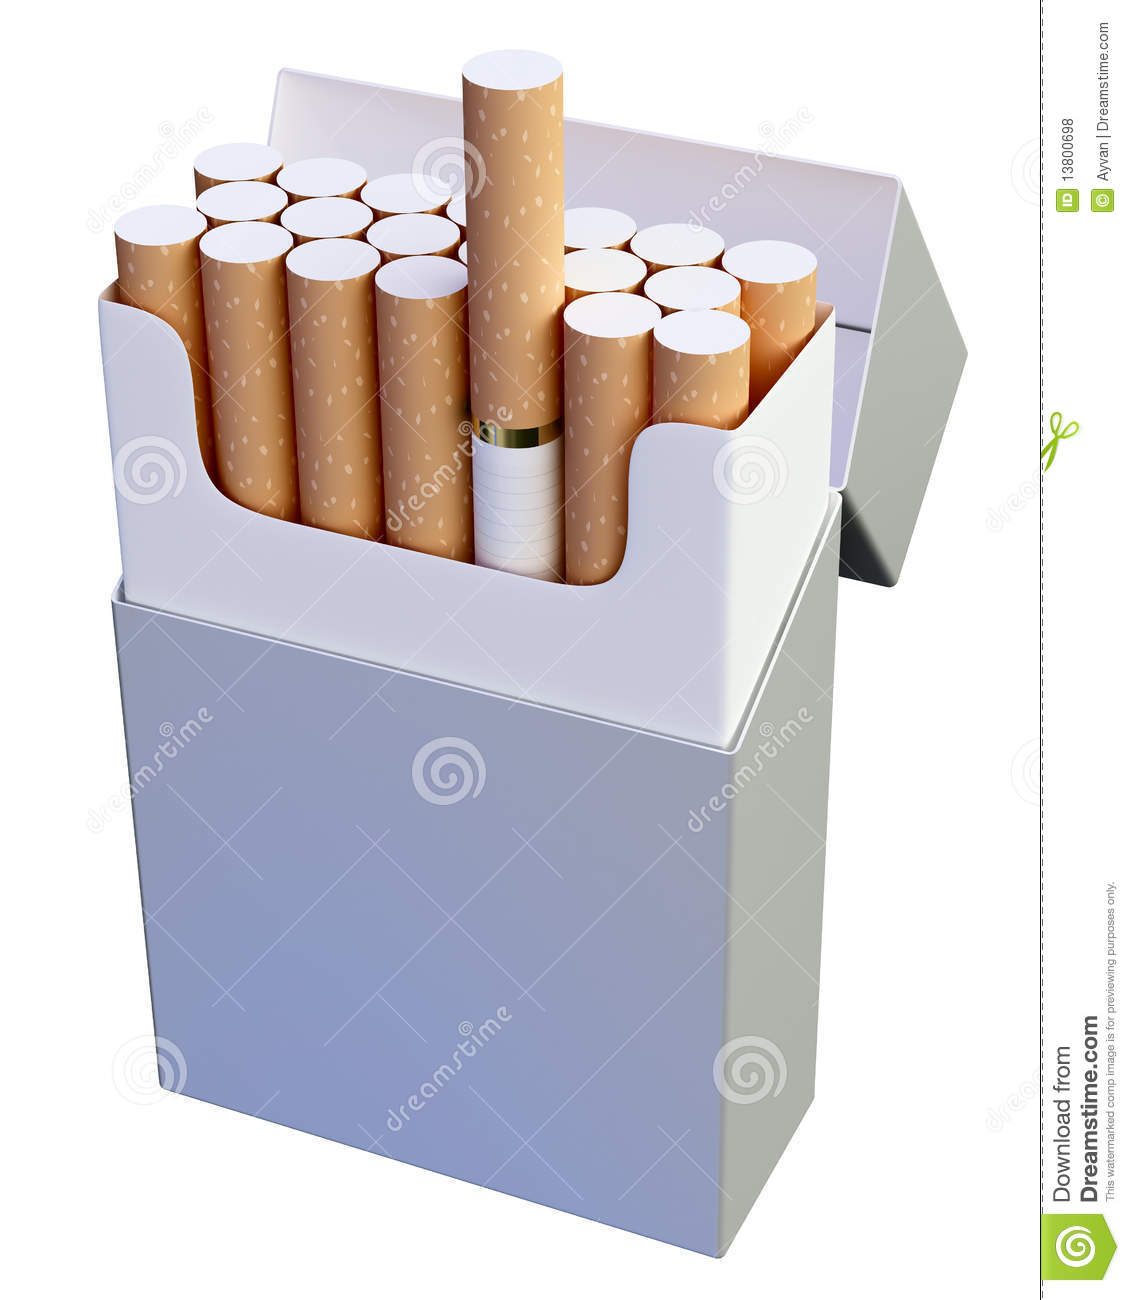 paquet de cigarette photo stock image du produit danger 13800698. Black Bedroom Furniture Sets. Home Design Ideas